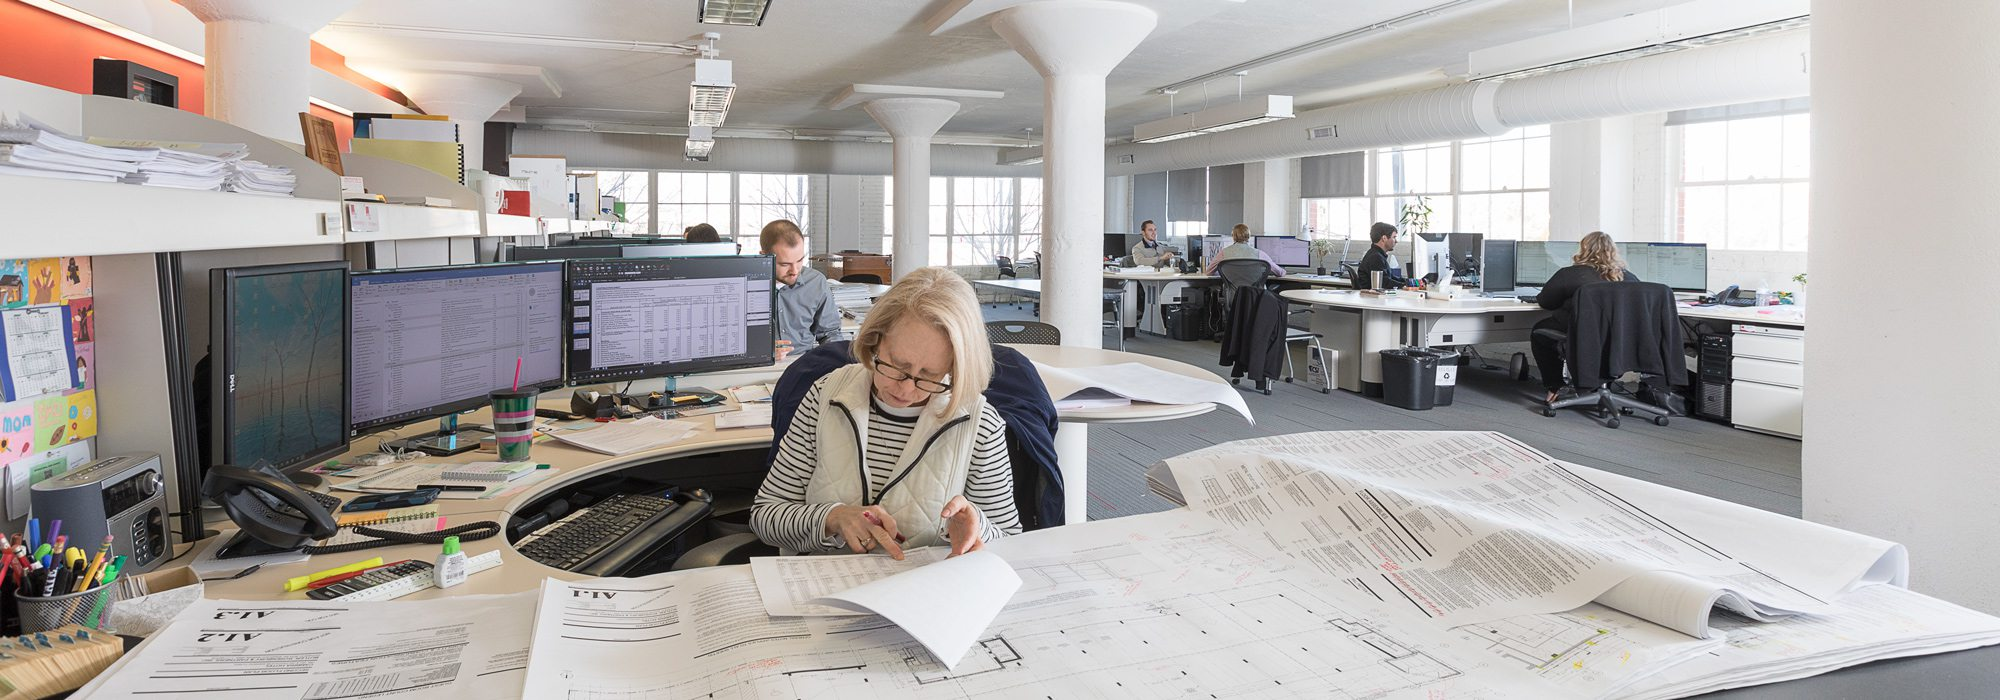 Woman working in open office with architecture plans on desk.